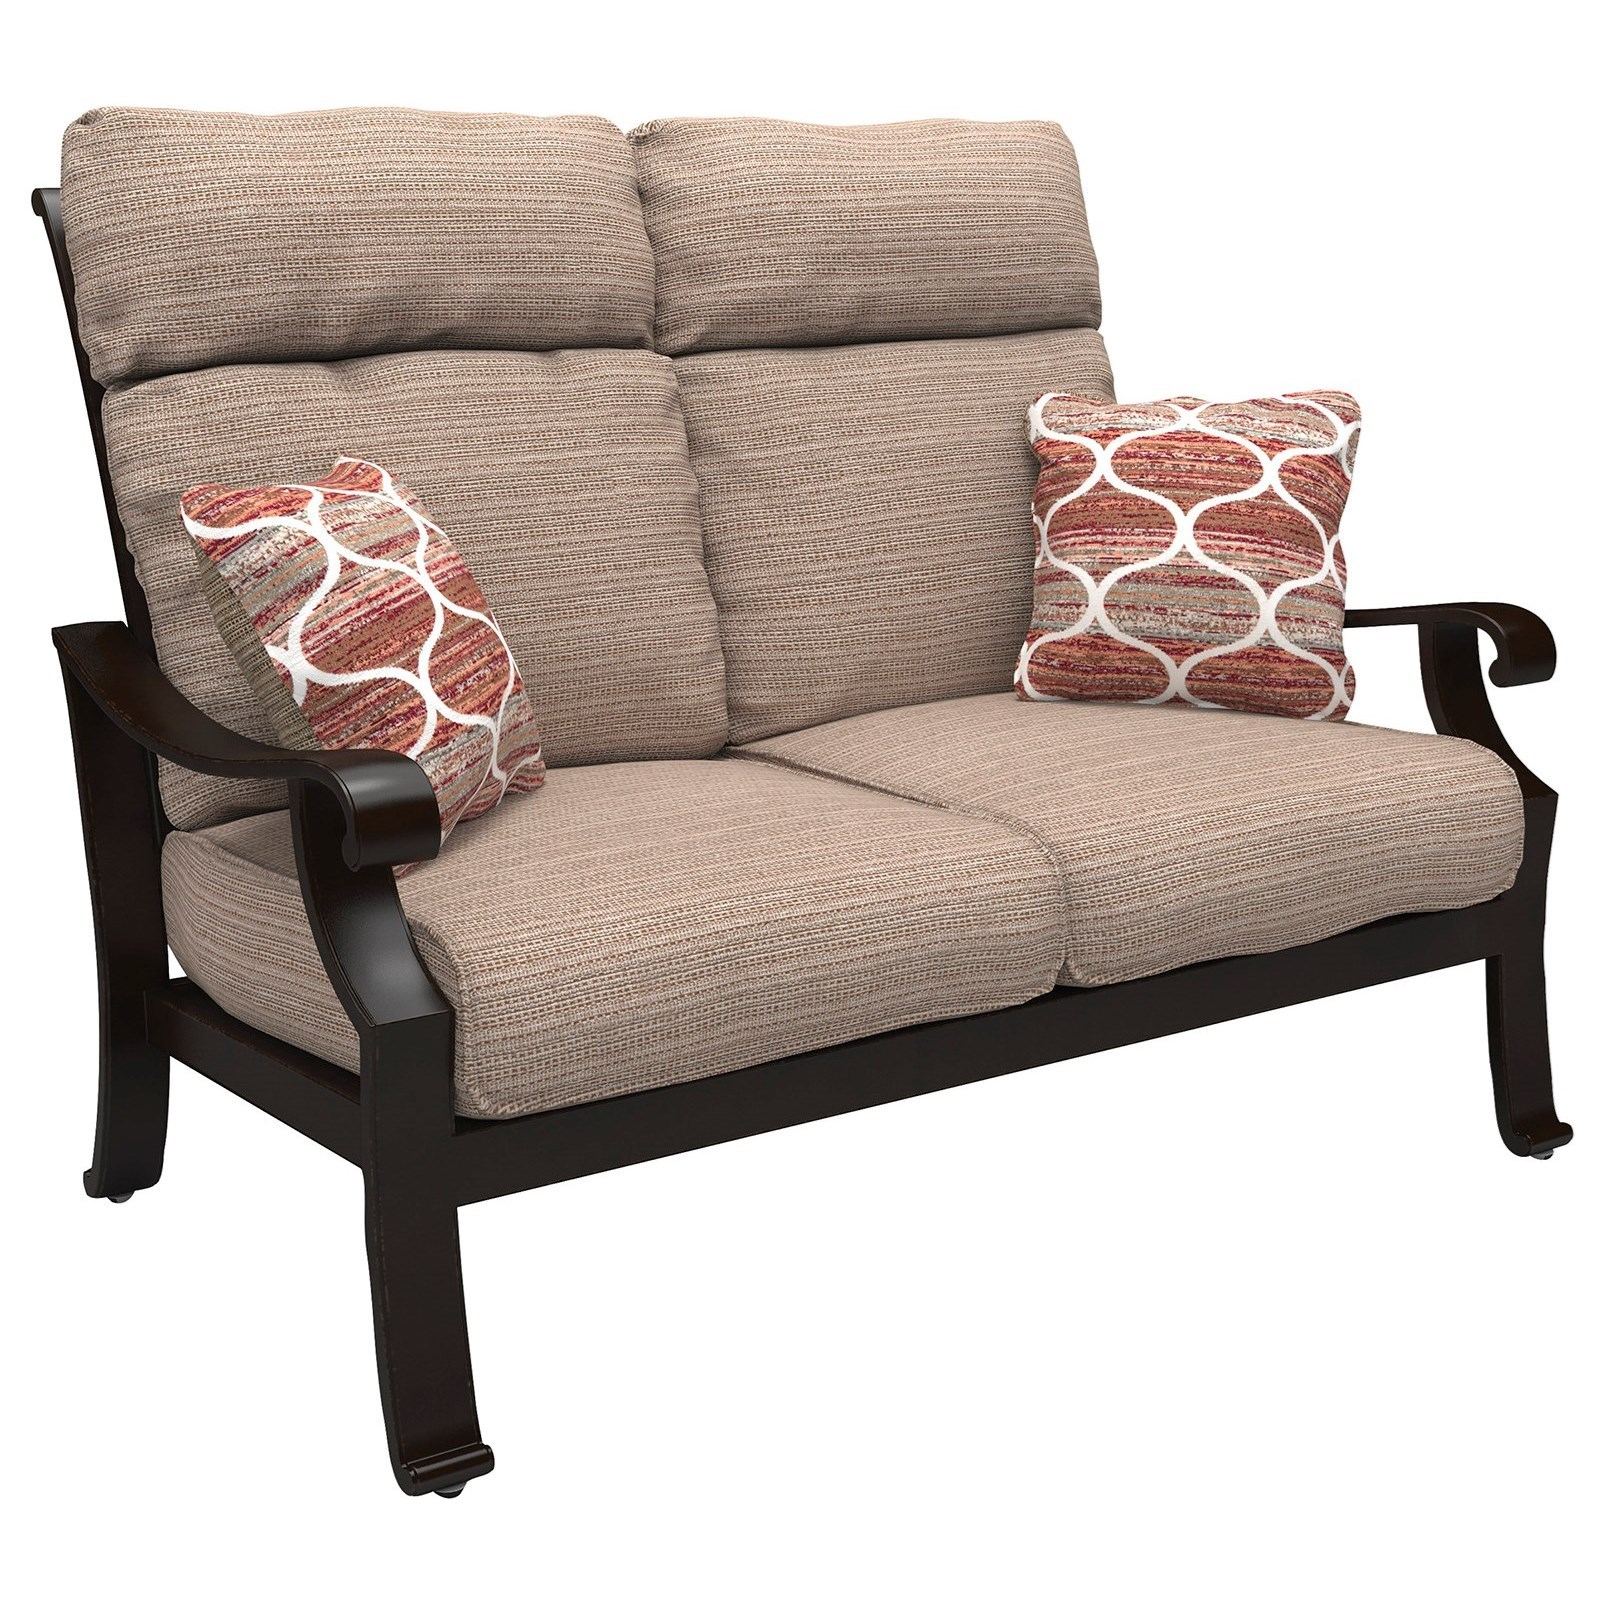 Signature Design By Ashley Chestnut Ridge High Back Loveseat With Cushion Value City Furniture